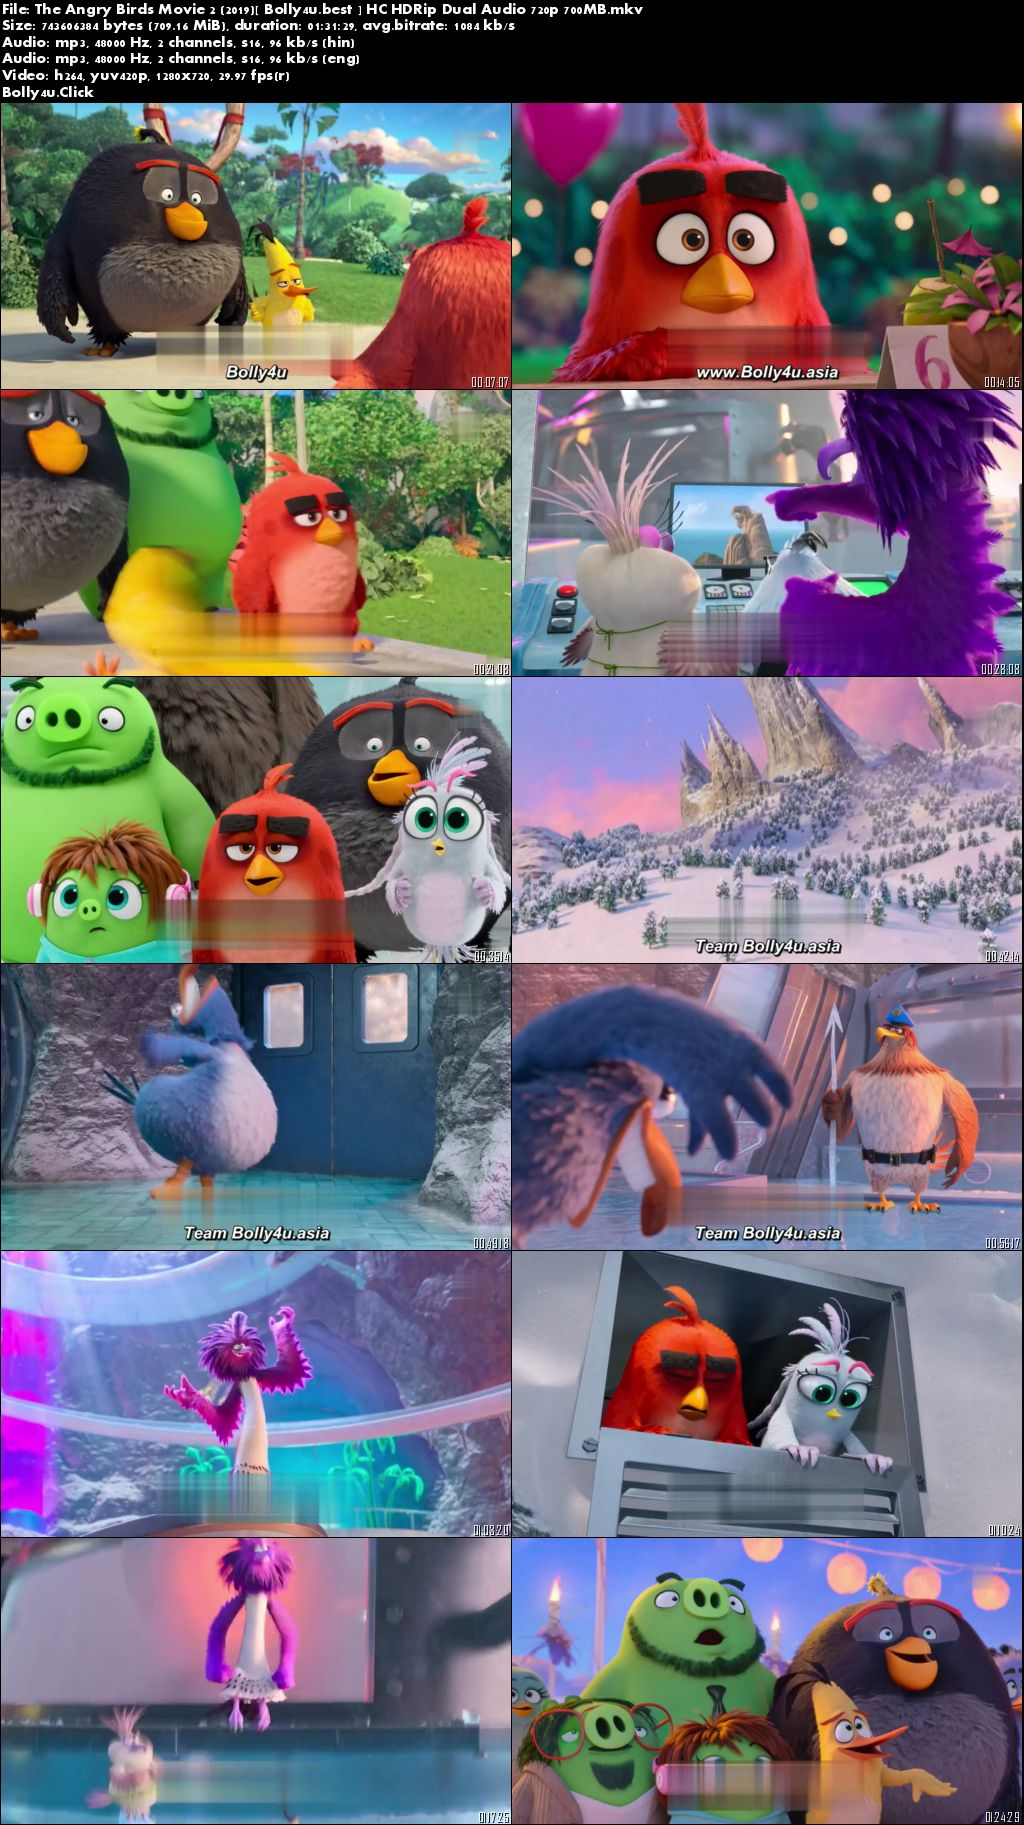 The Angry Birds Movie 2 2019 HC HDRip 700Mb Hindi Dual Audio 720p Download